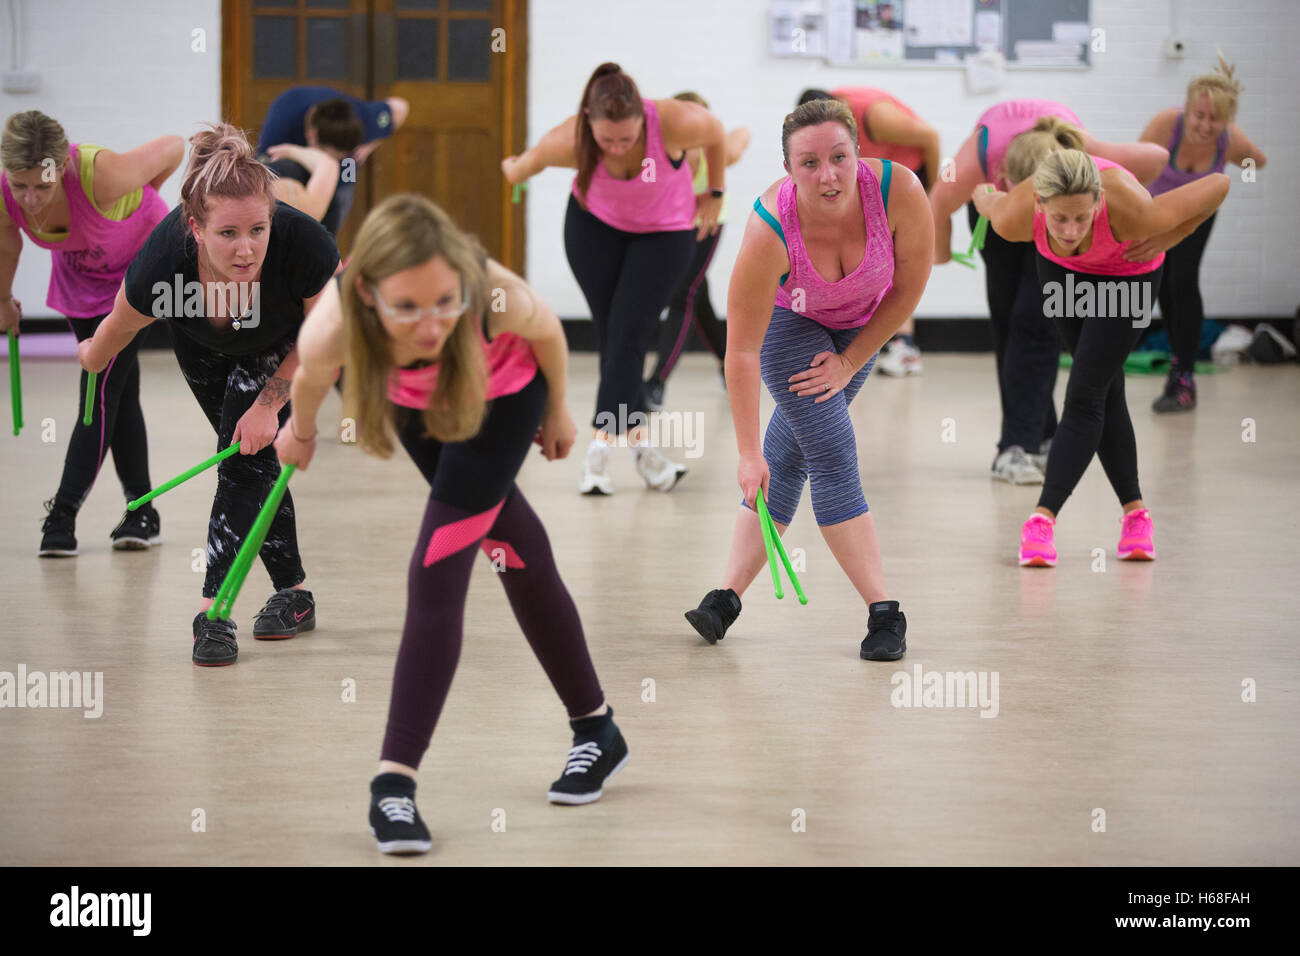 Women participating in POUND fitness class, hour long workout drumming which increases core strength, Surrey, UK - Stock Image